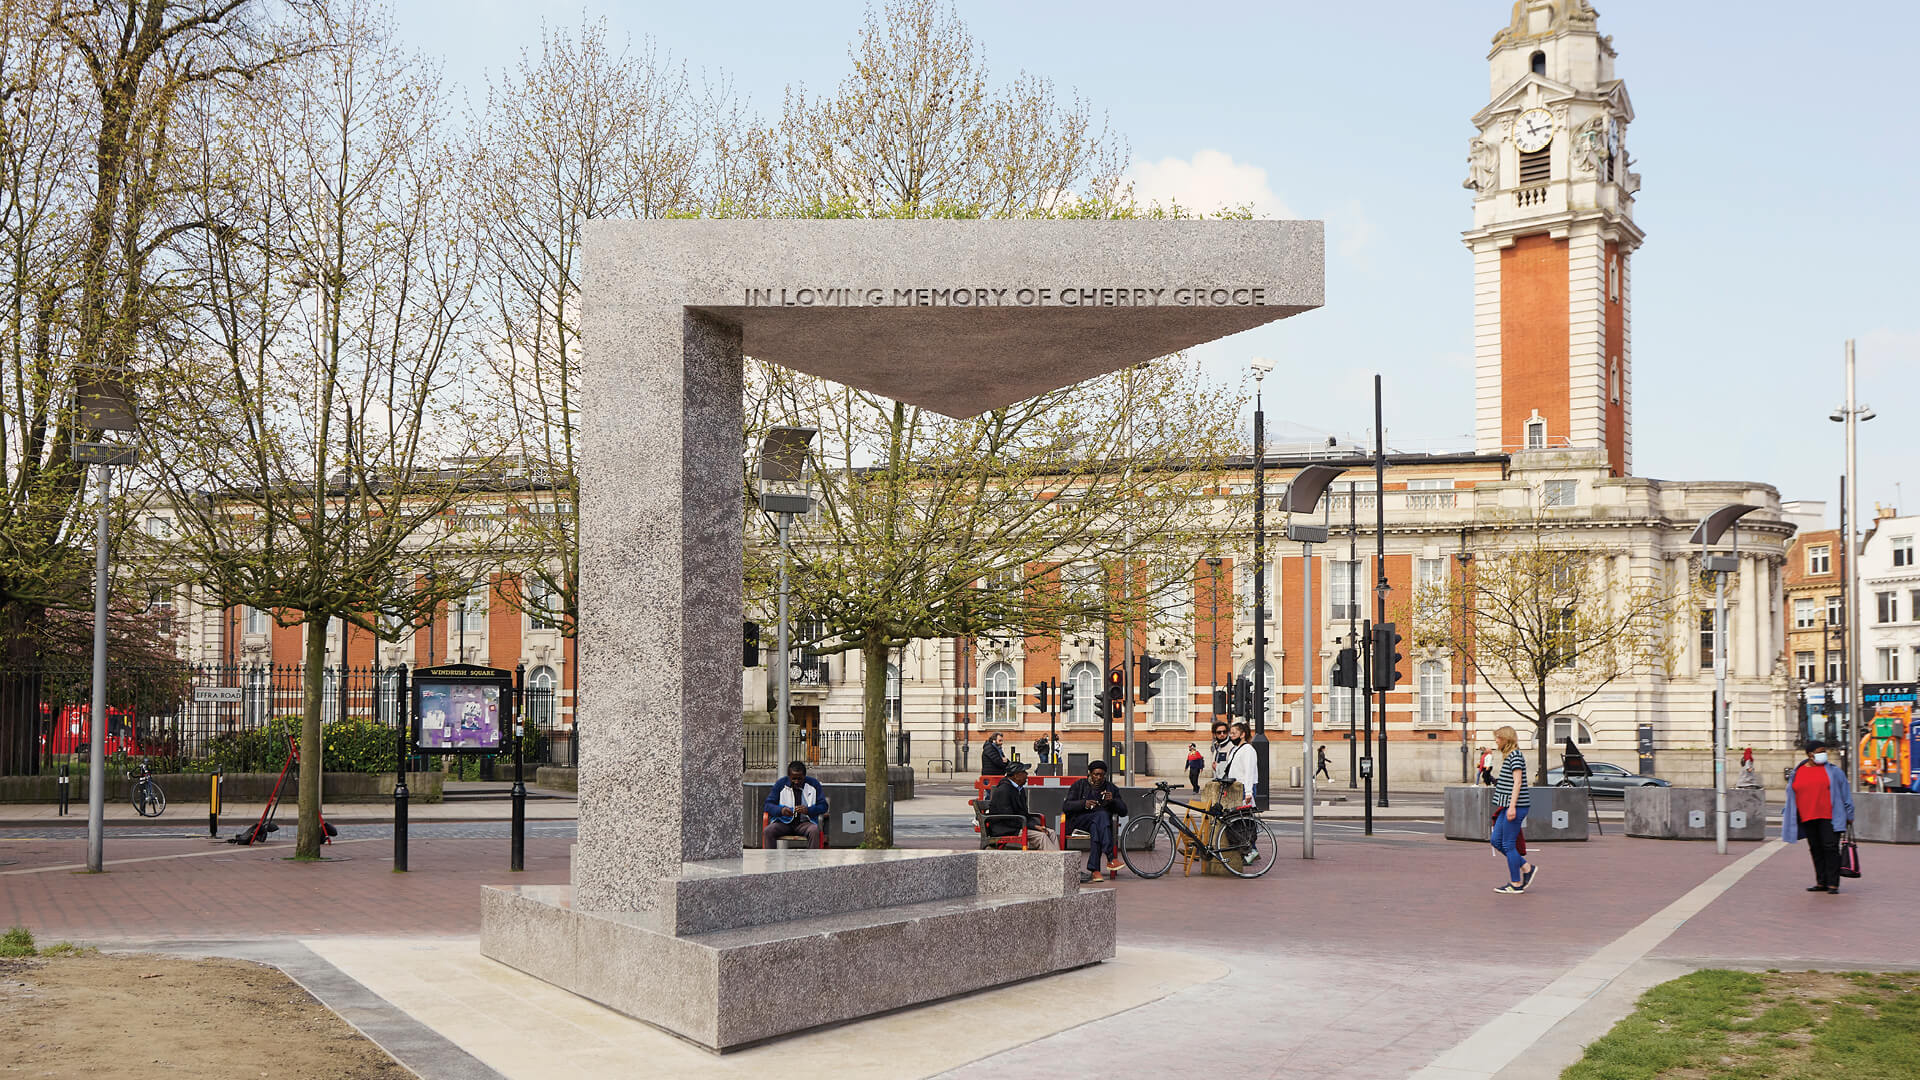 Adjaye Associates unveiled the Cherry Groce Memorial Pavilion in Brixton, near London | Cherry Groce Memorial Pavilion by Adjaye Associates | STIRworld